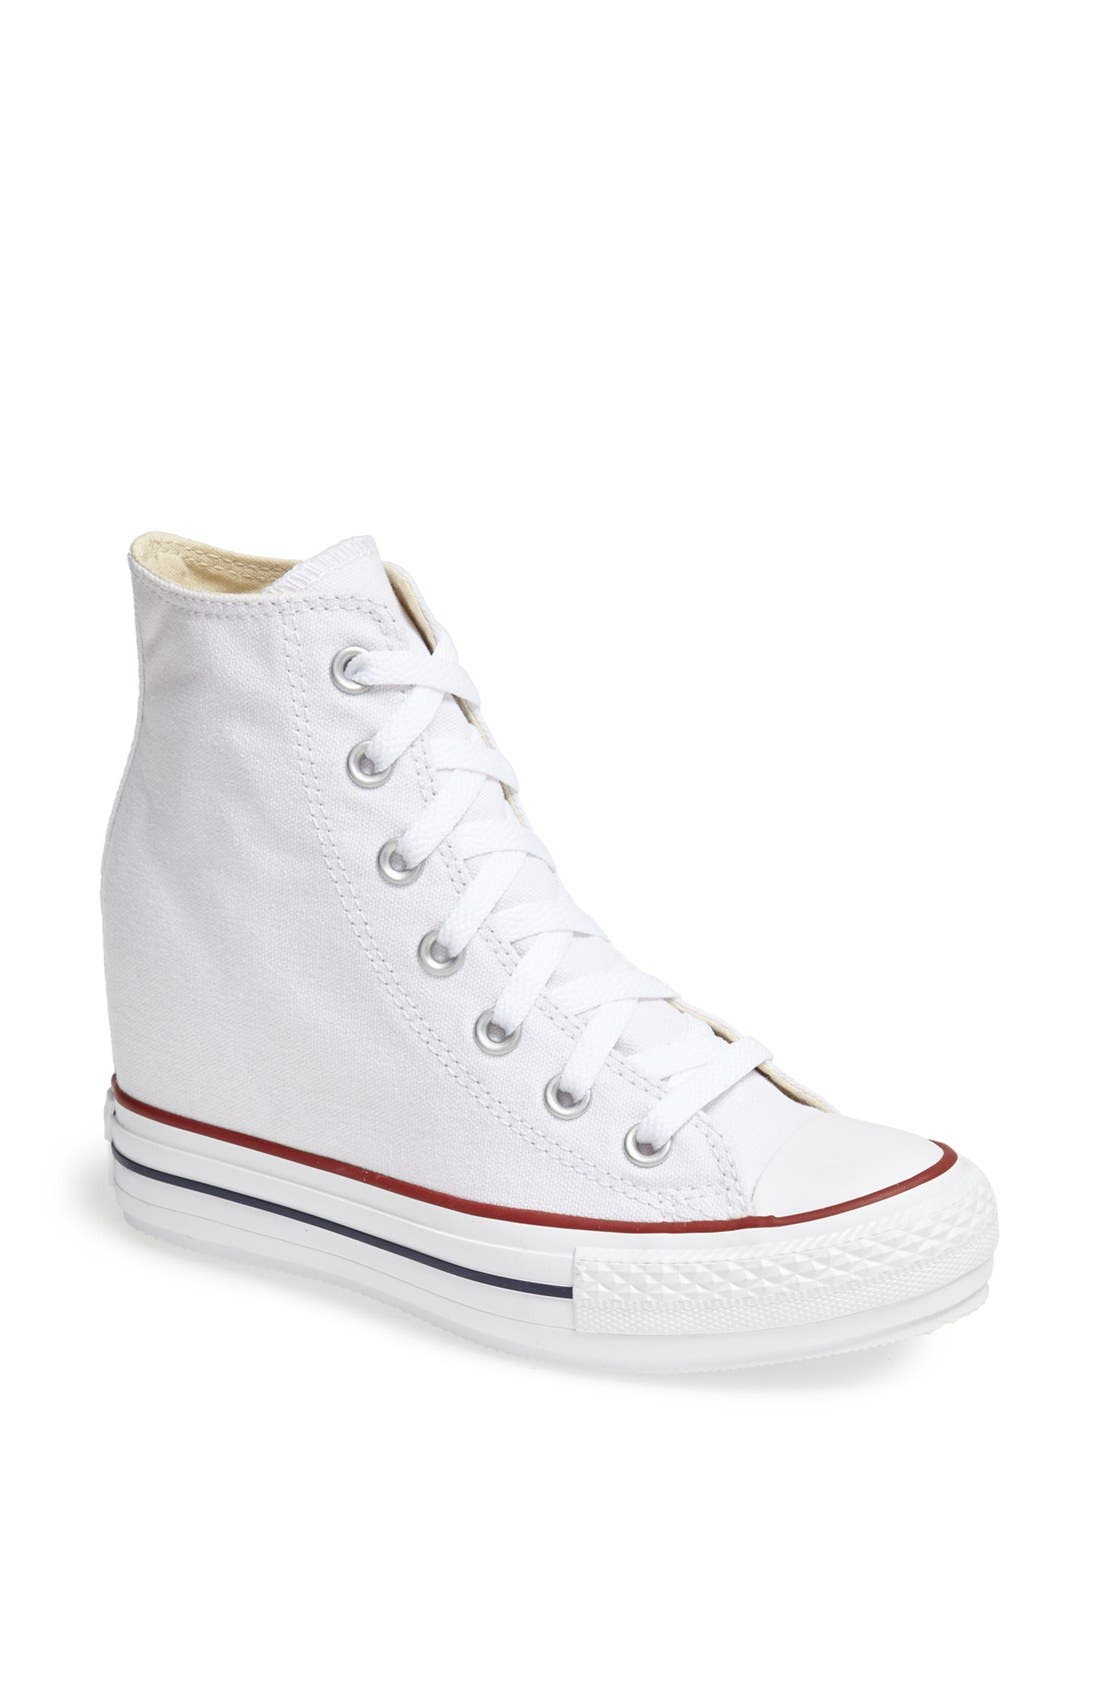 Alternate Image 1 Selected - Converse Chuck Taylor® All Star® Hidden Wedge Platform High-Top Sneaker